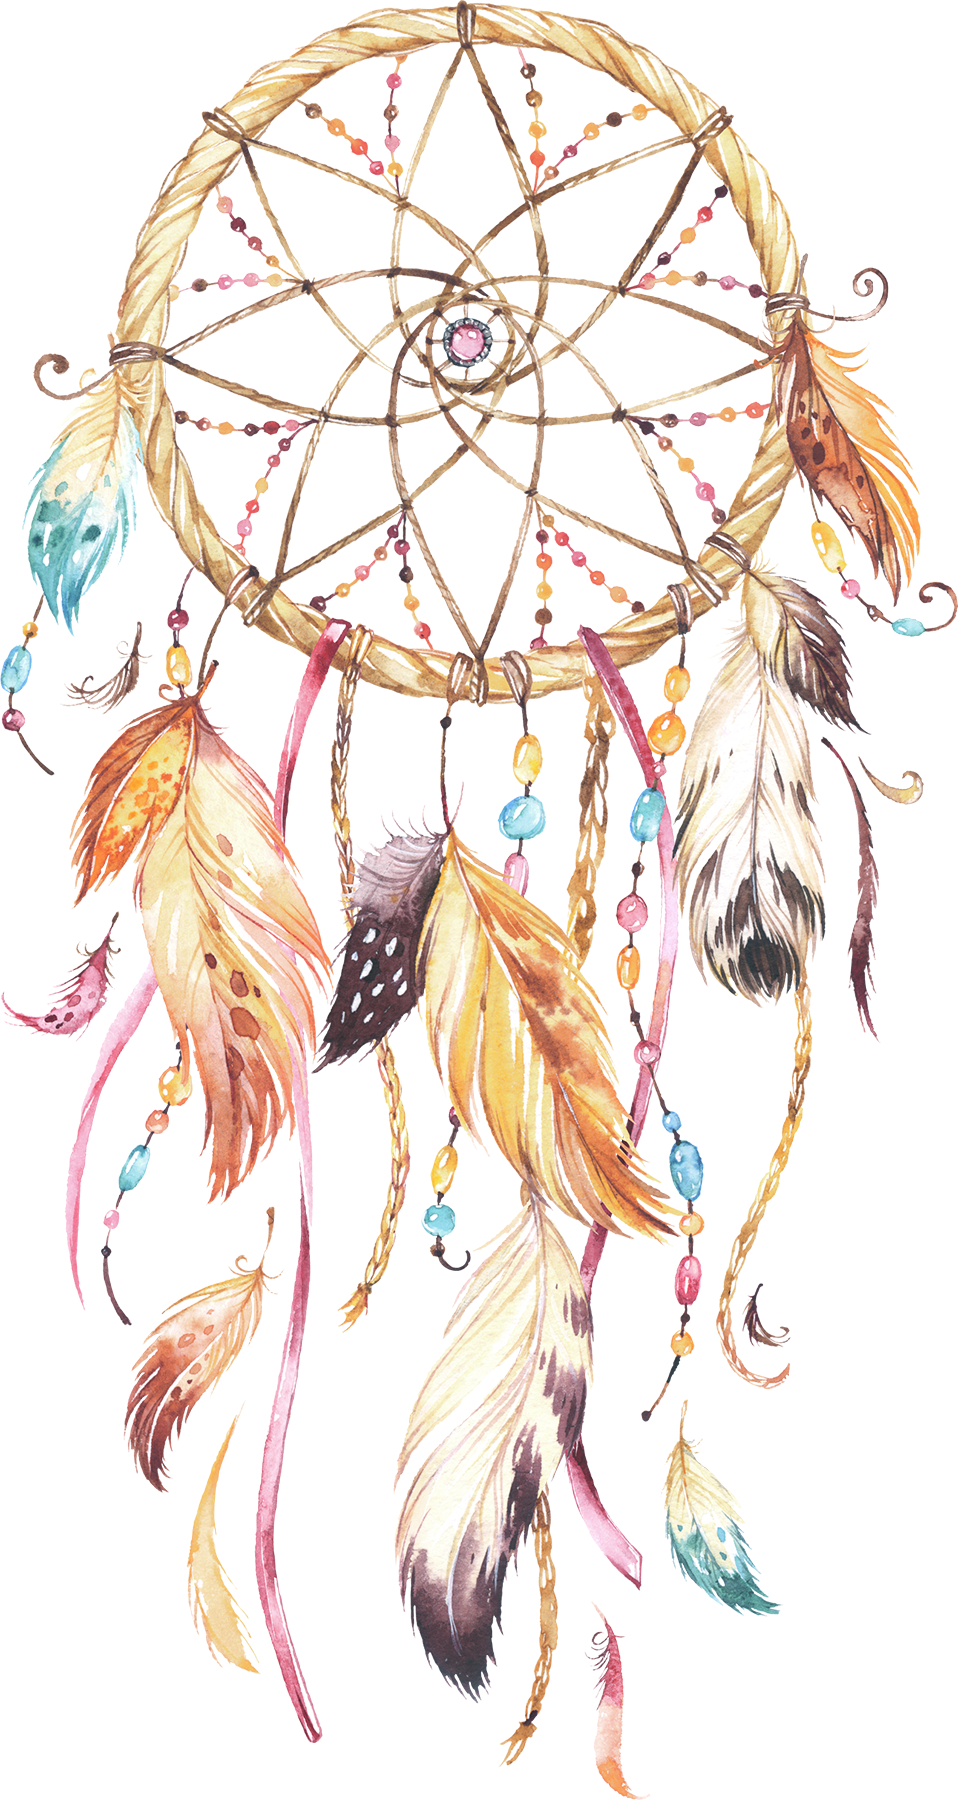 Dreamcatcher clipart illustration. Pin by liana rosales